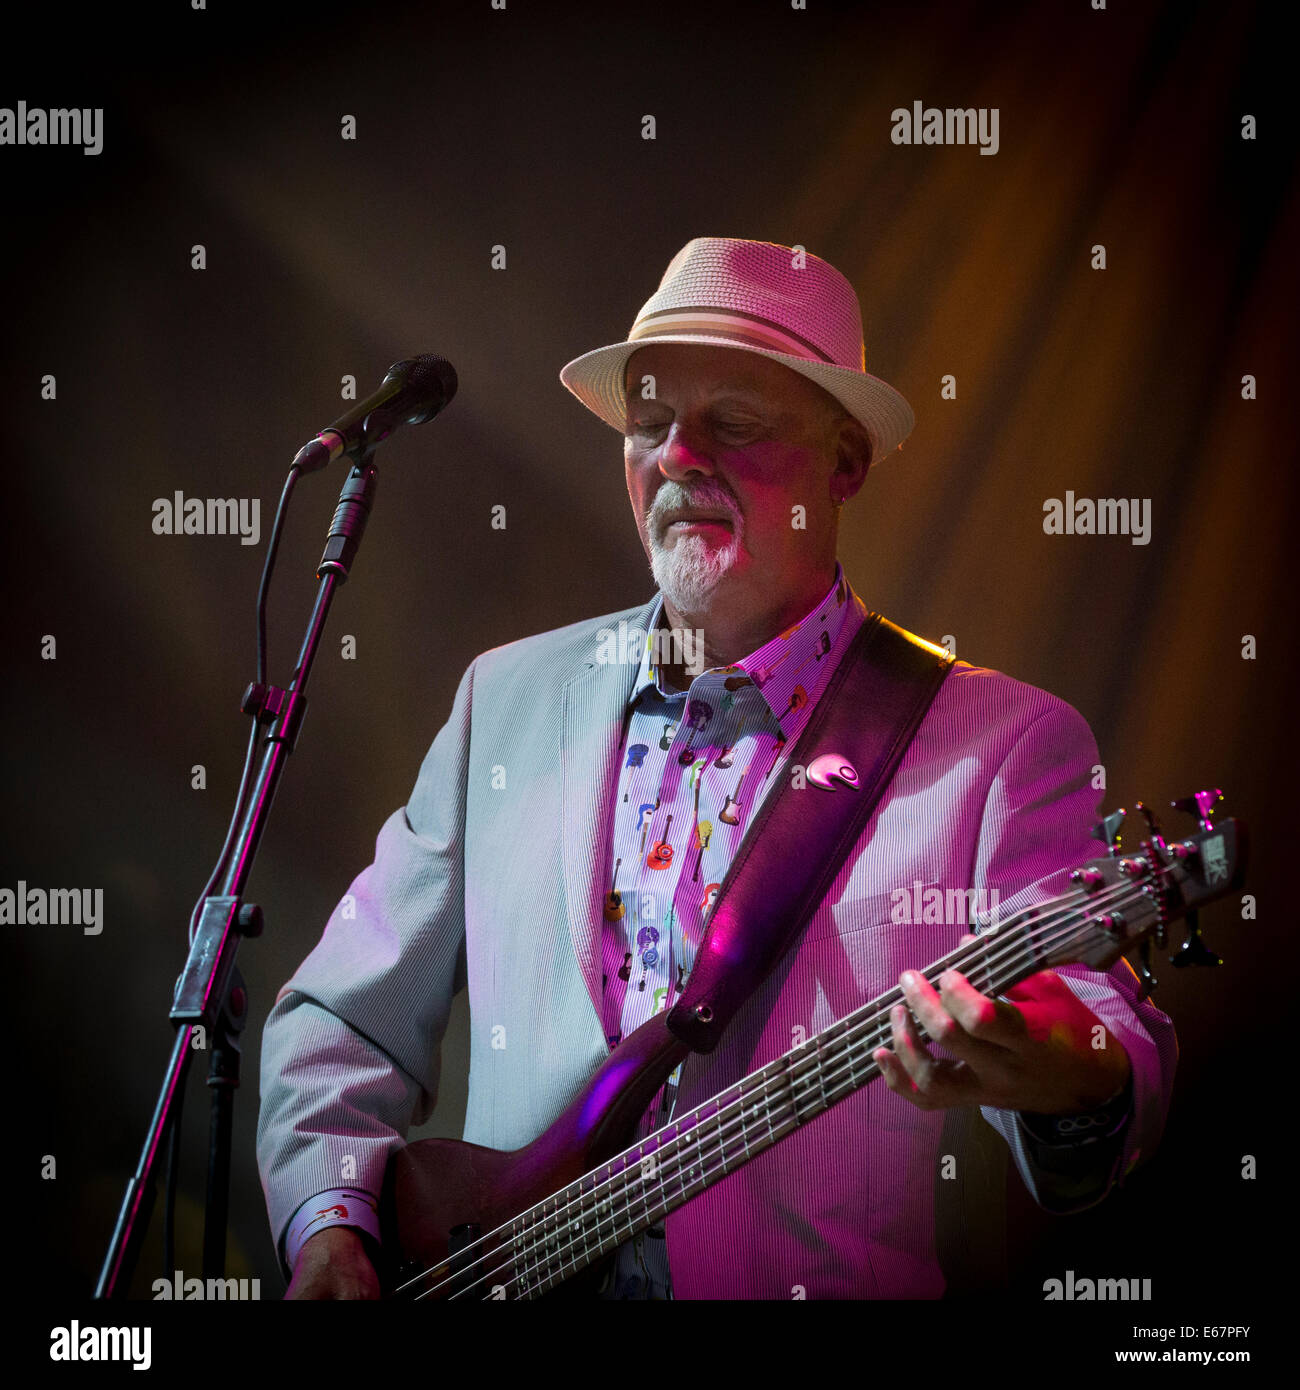 Dave Pegg of Fairport Convention playing a mondolin on stage at Fairport's Cropredy Convention 2014 - Stock Image